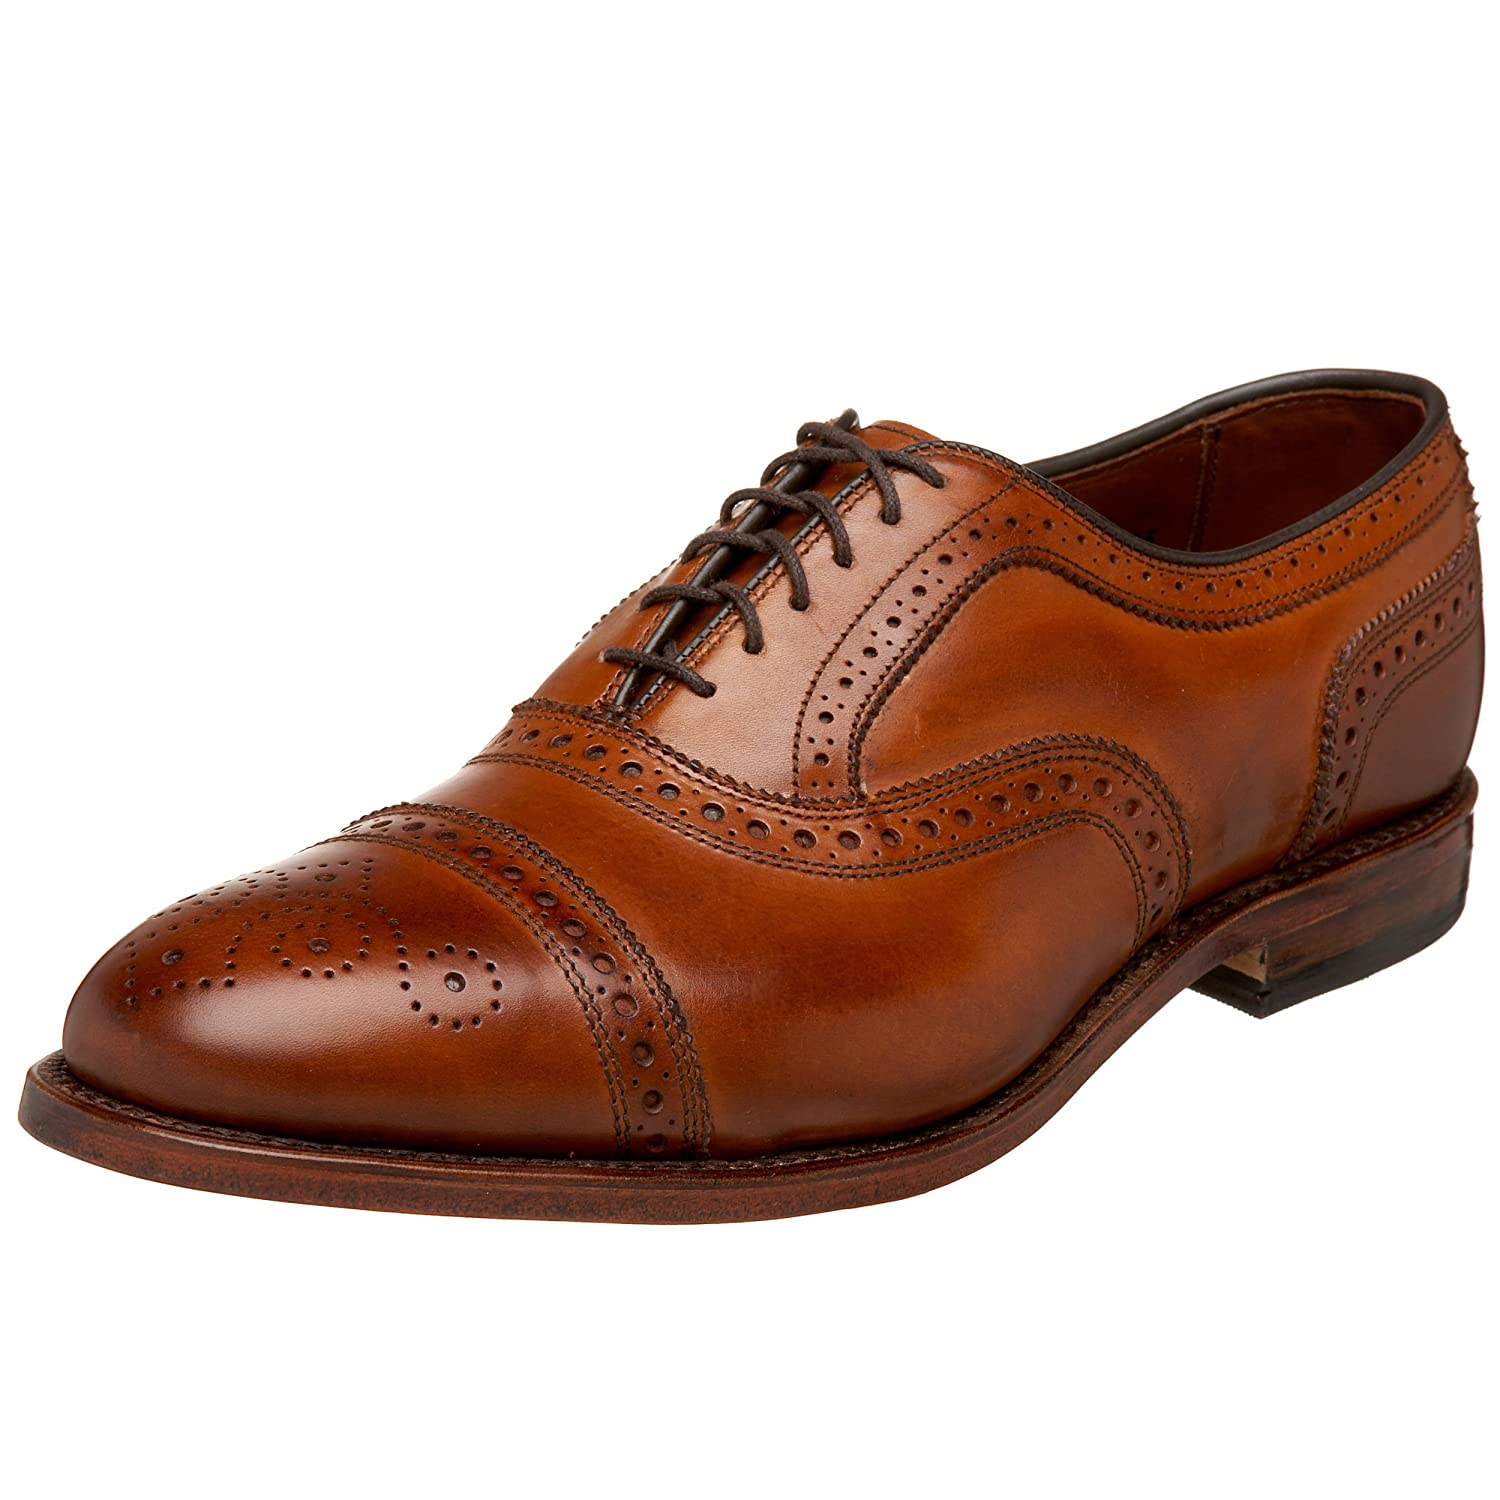 Online shopping for Oxfords - Men from a great selection at Shoes & Handbags Store.